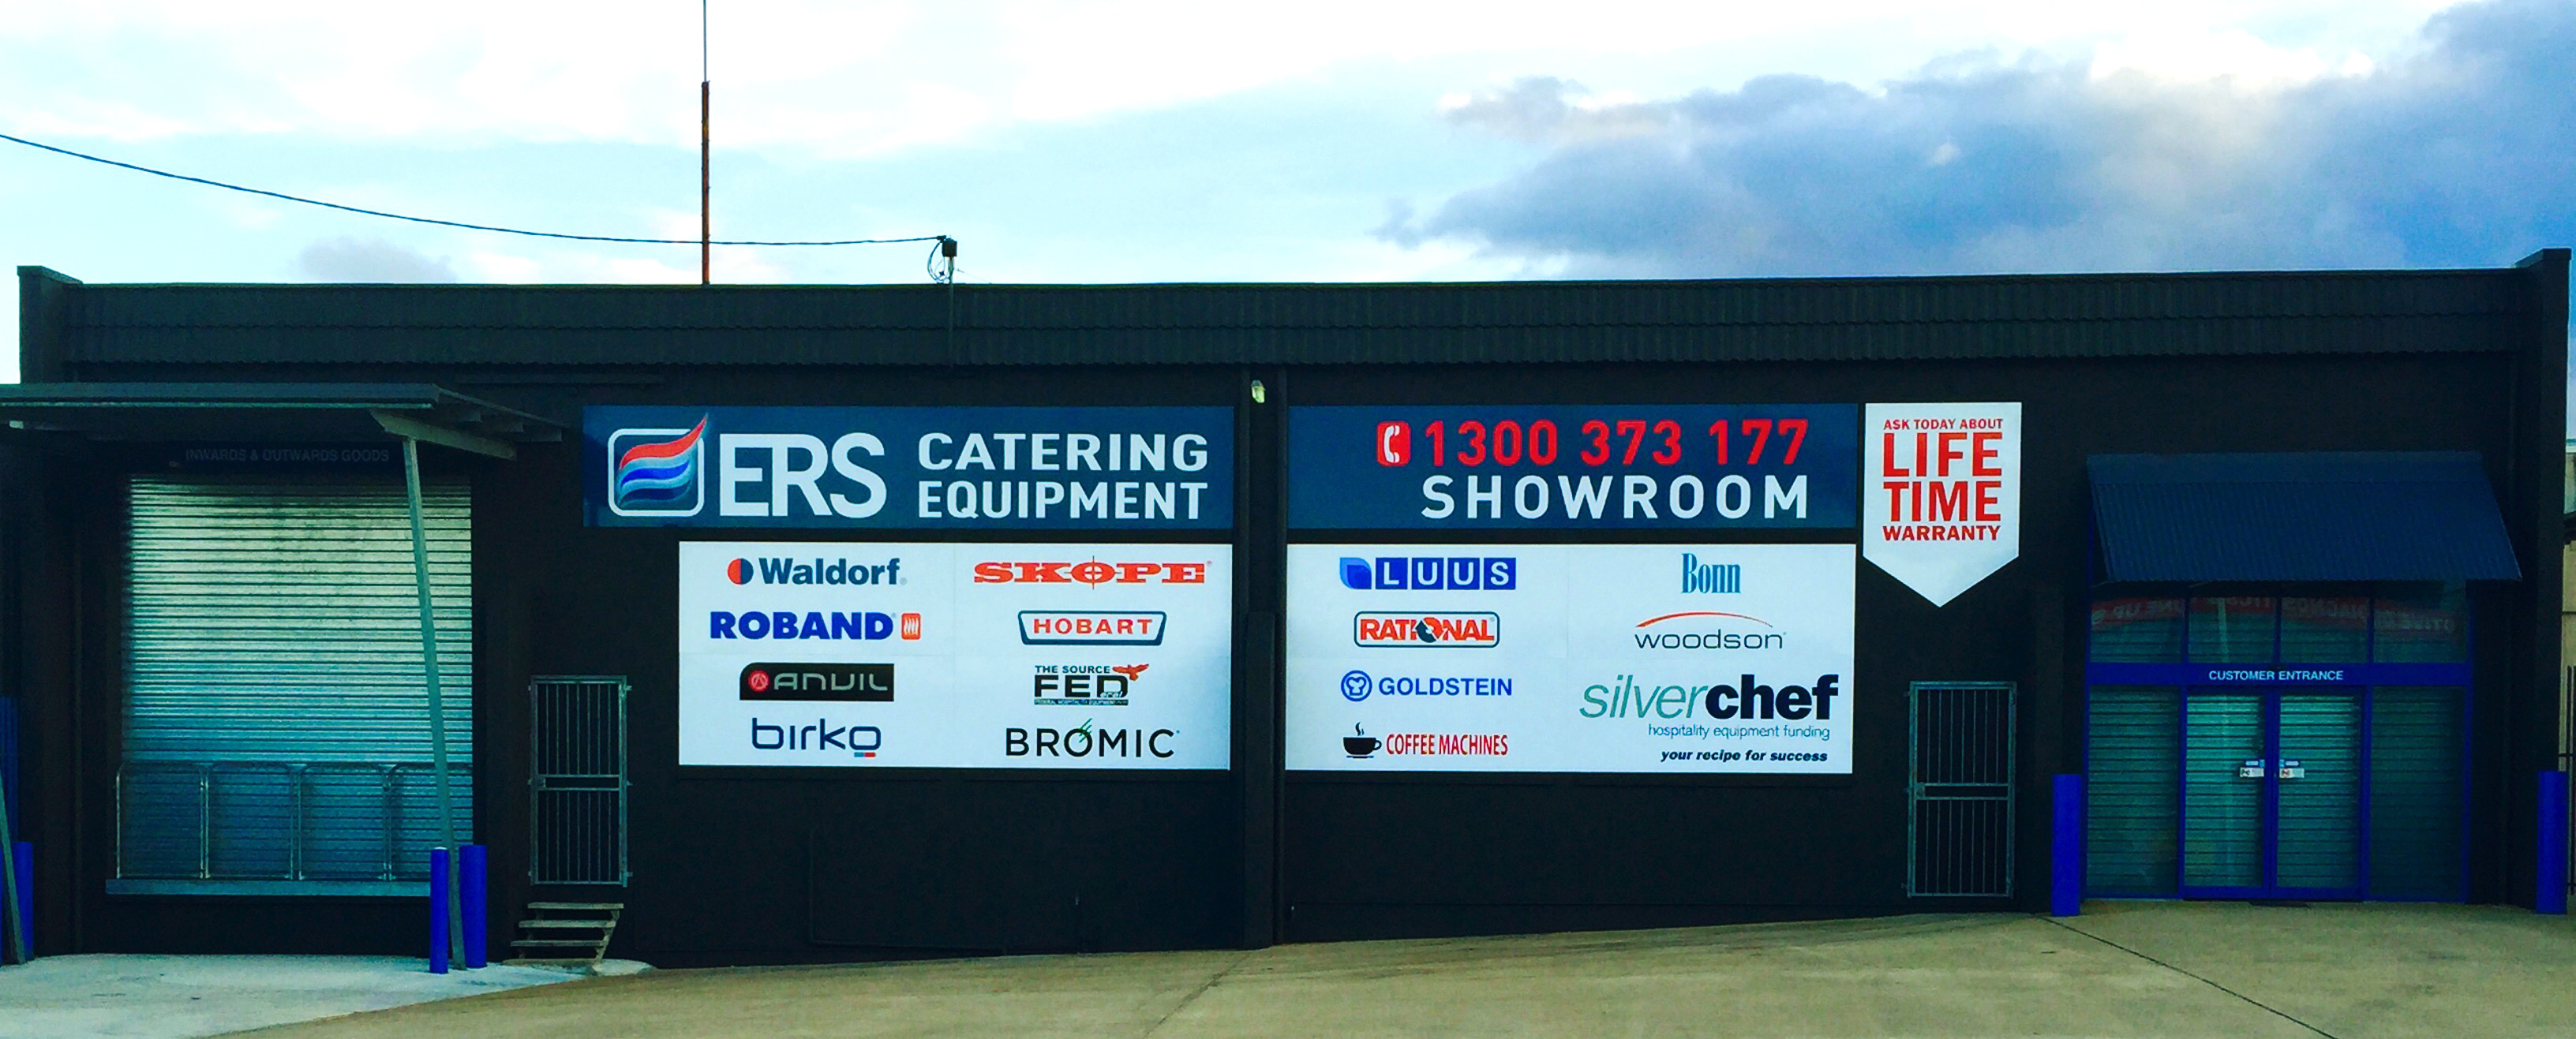 ERS Catering Equipment - About us